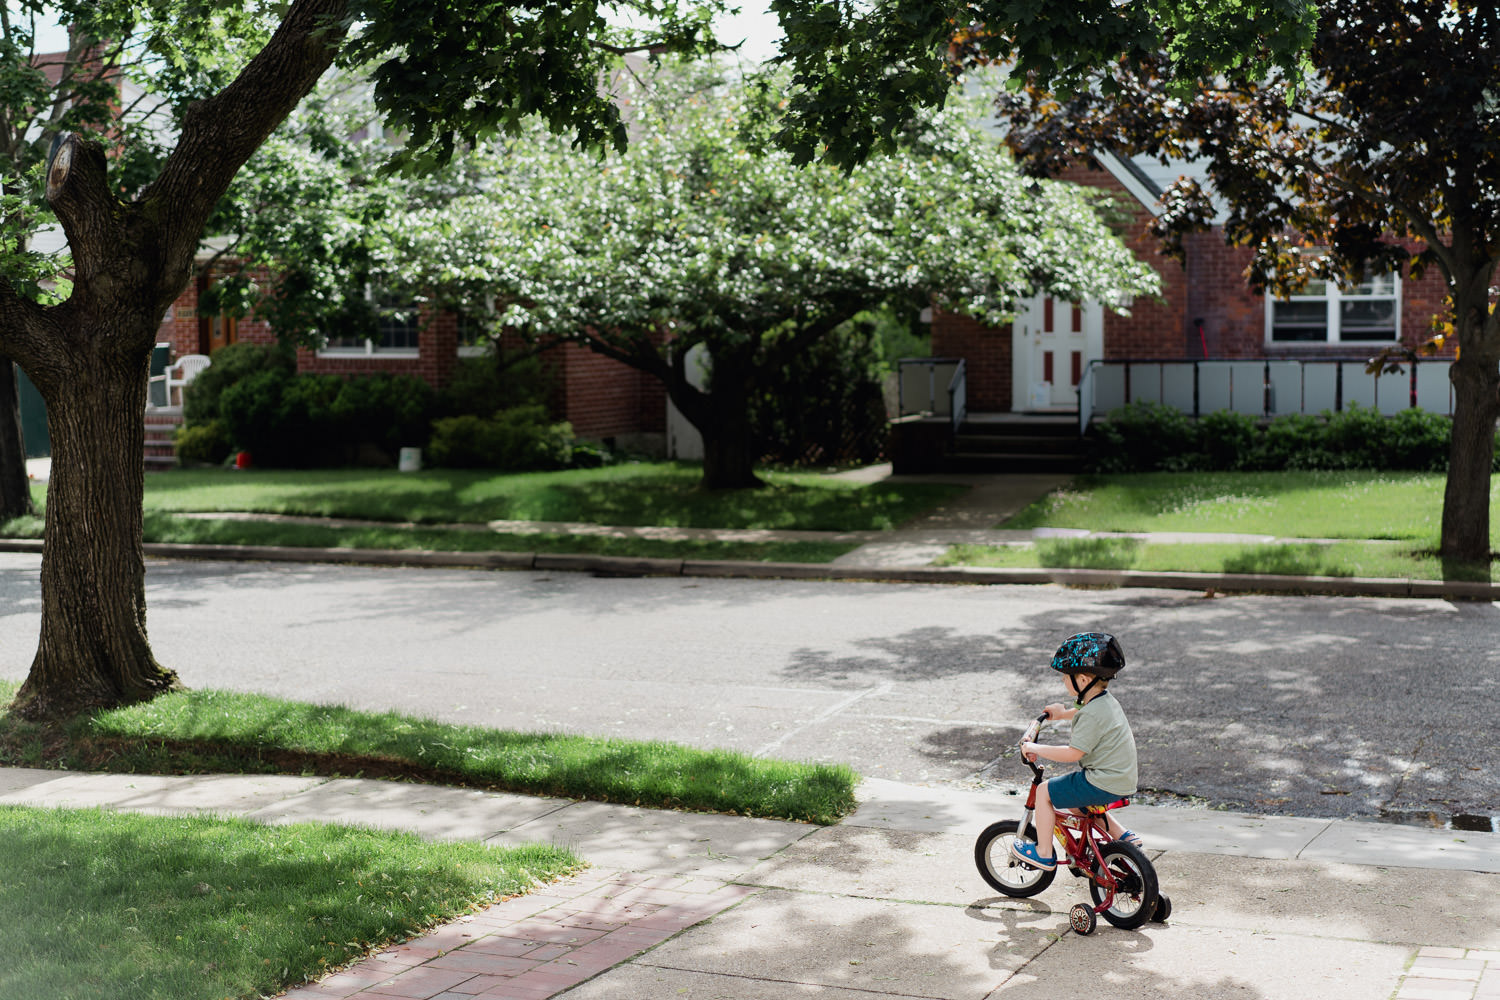 A little boy rides his bike in a driveway.